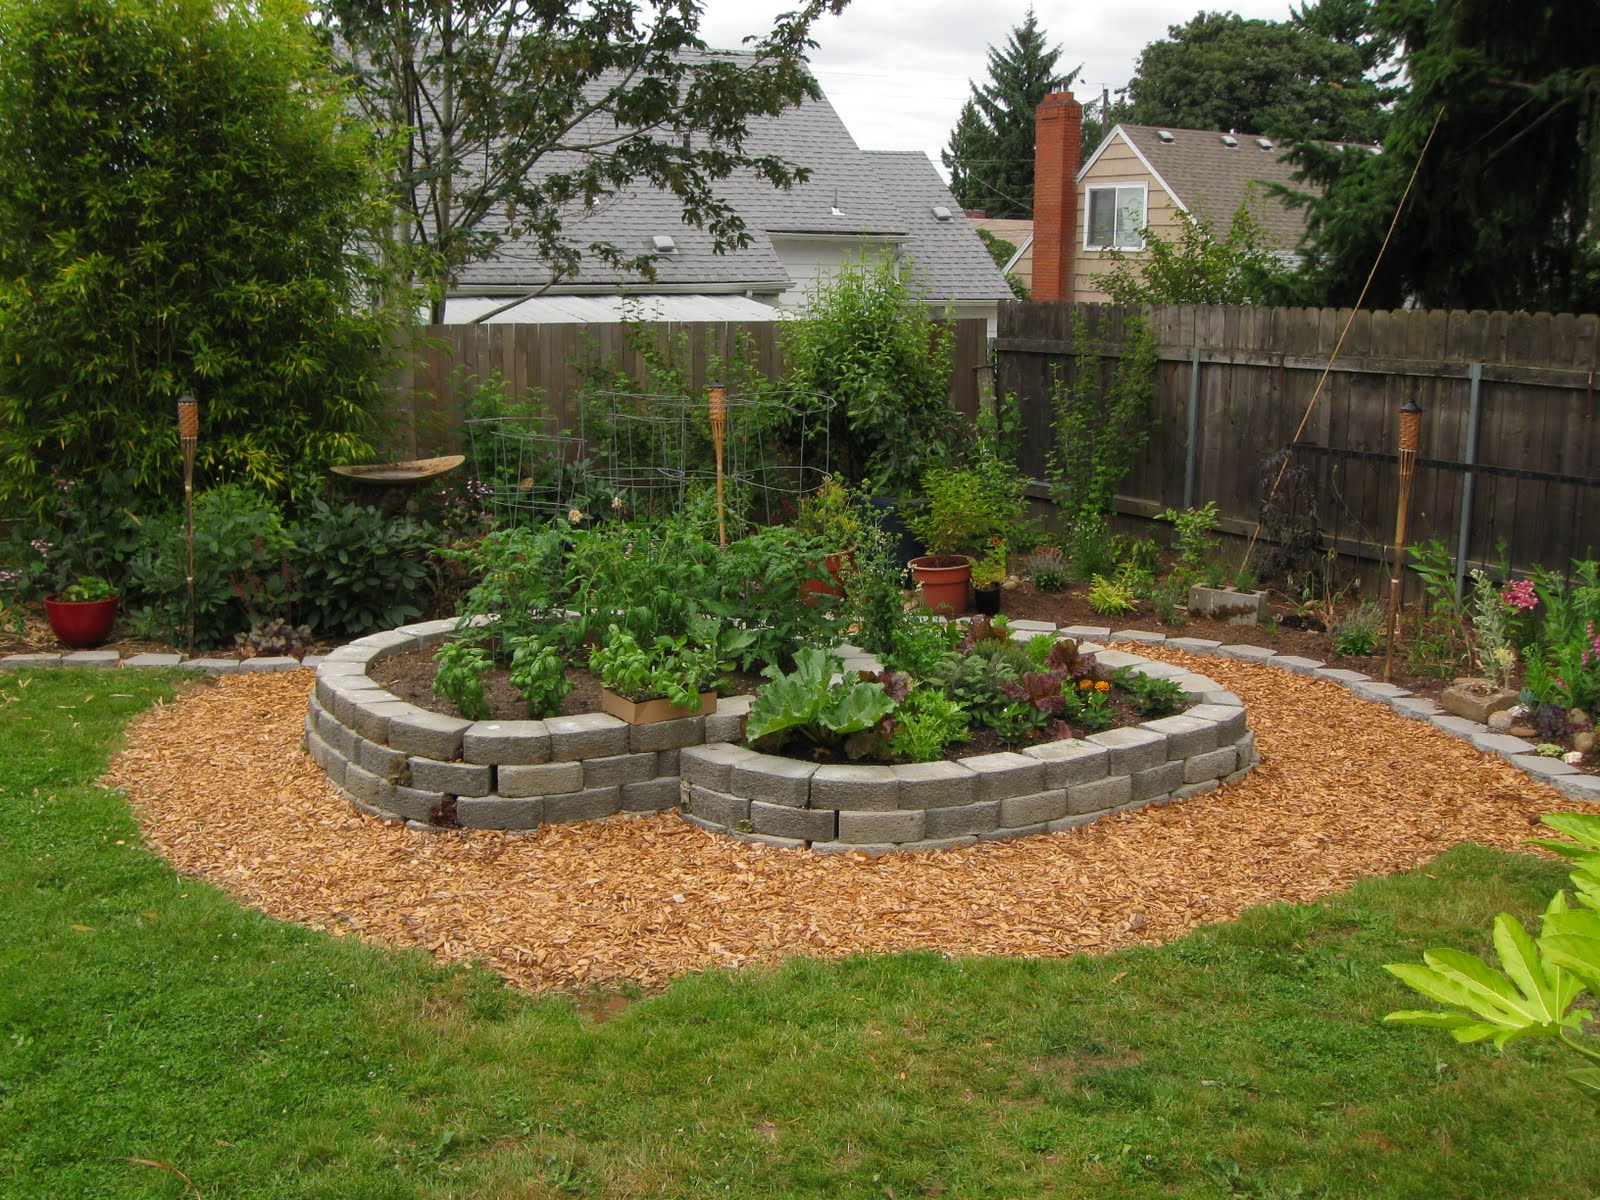 Simple landscaping ideas with low maintenance design and for Pictures of landscaping ideas